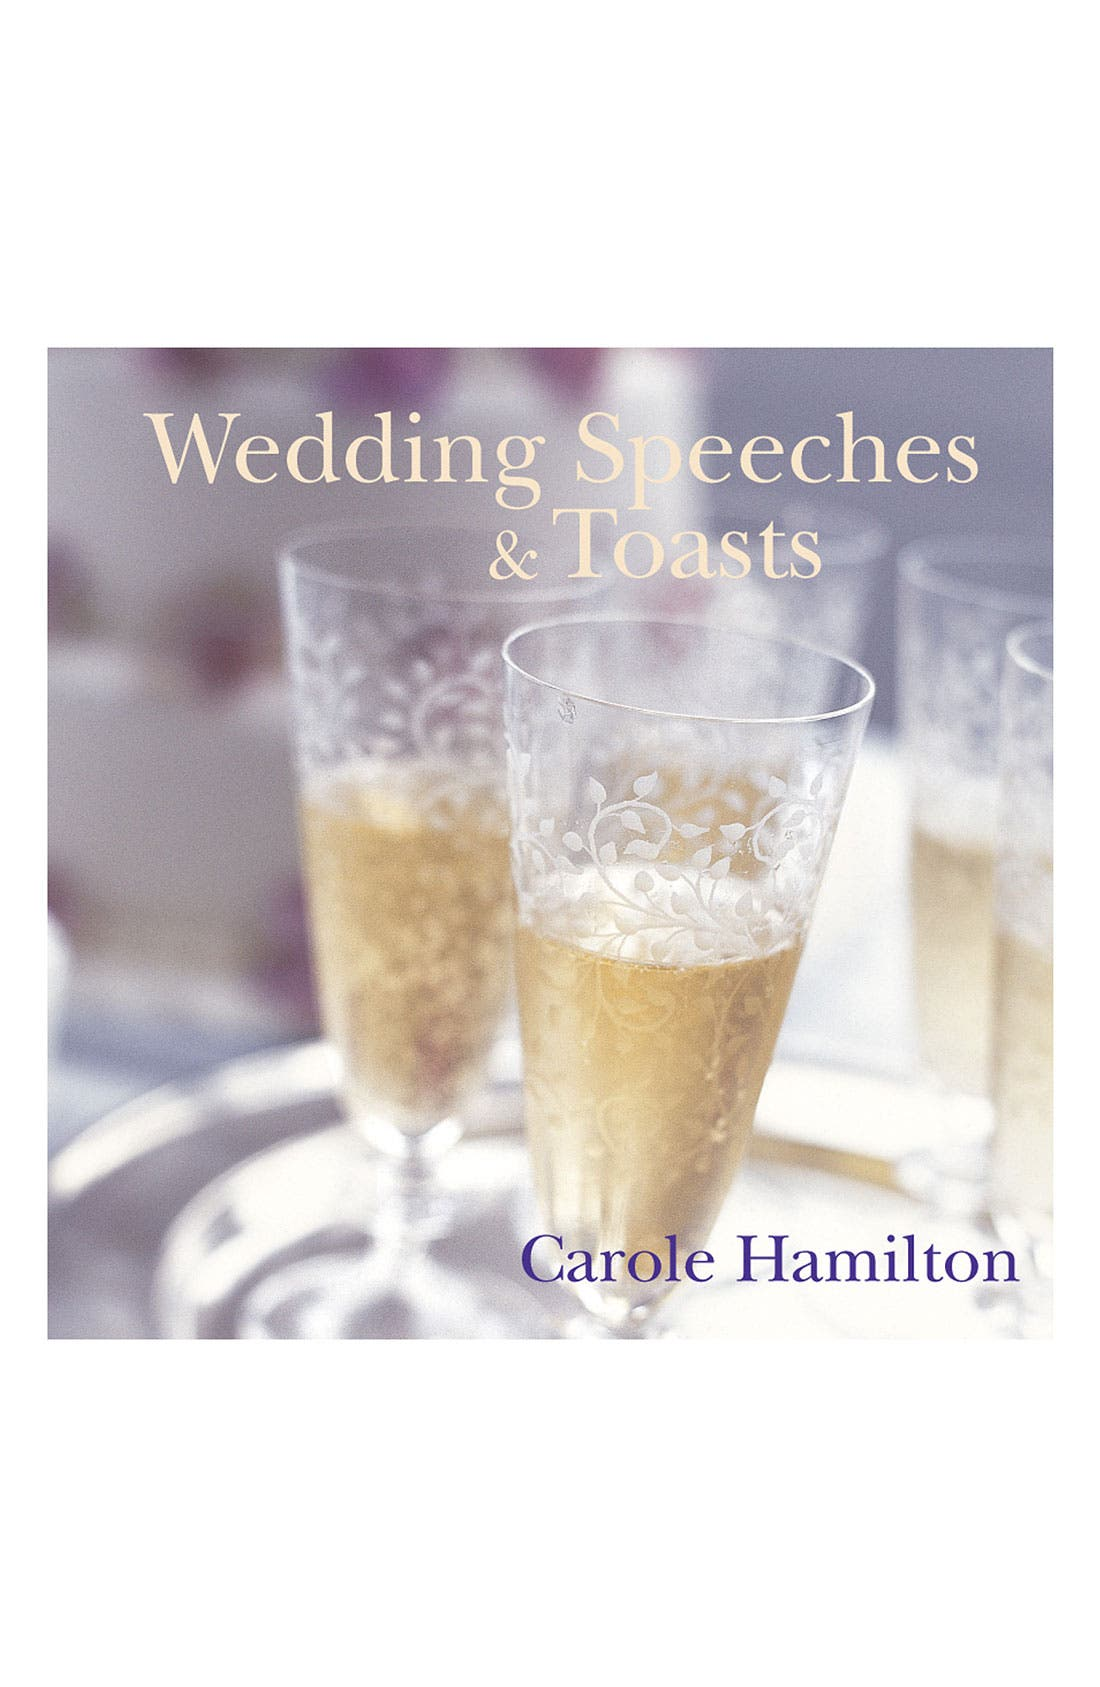 Alternate Image 1 Selected - 'Wedding Speeches & Toasts' Book